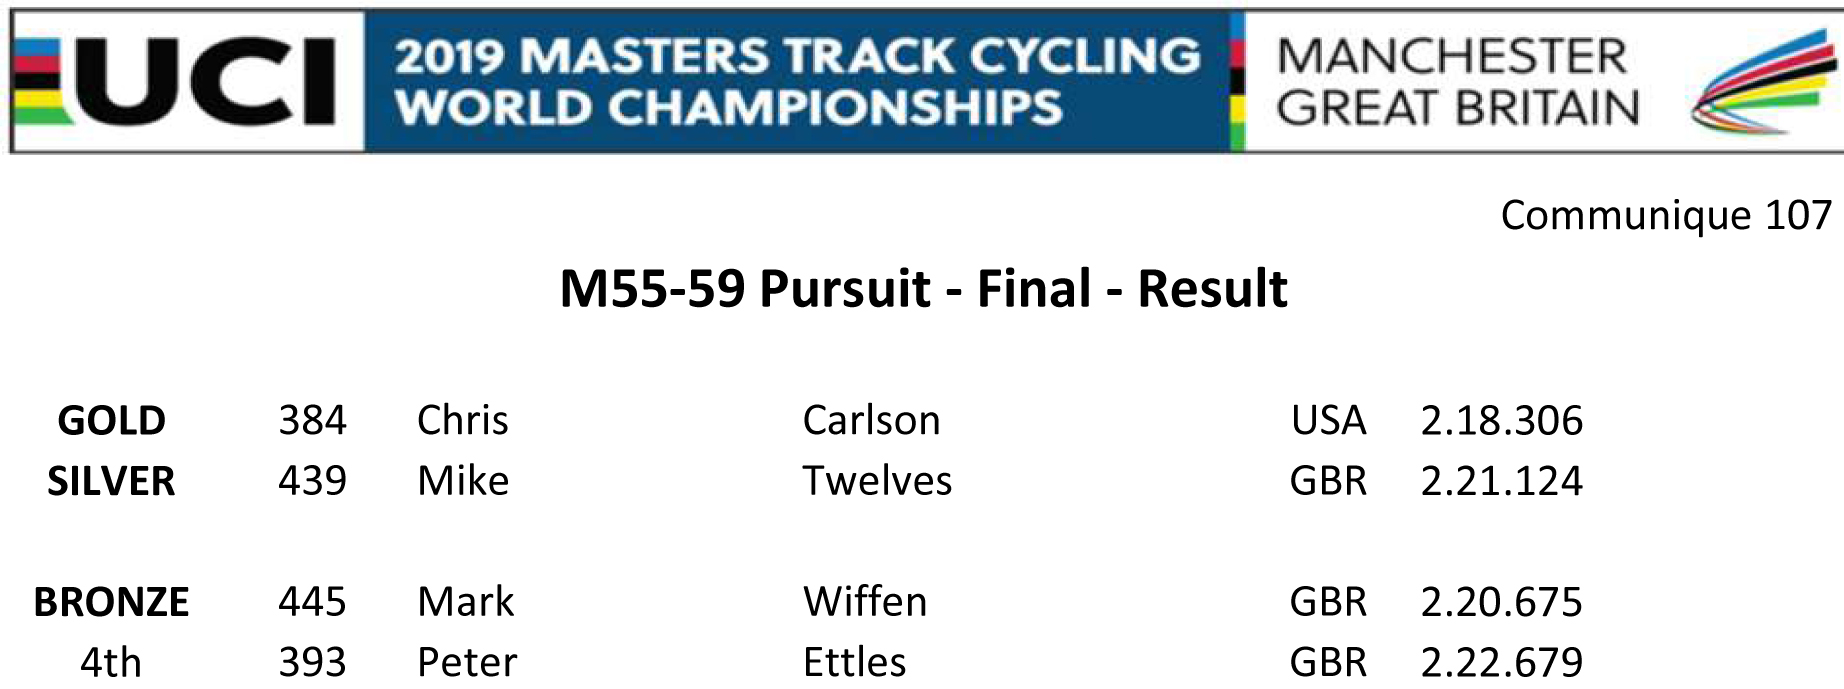 M5559 PURSUIT FINAL RESULT